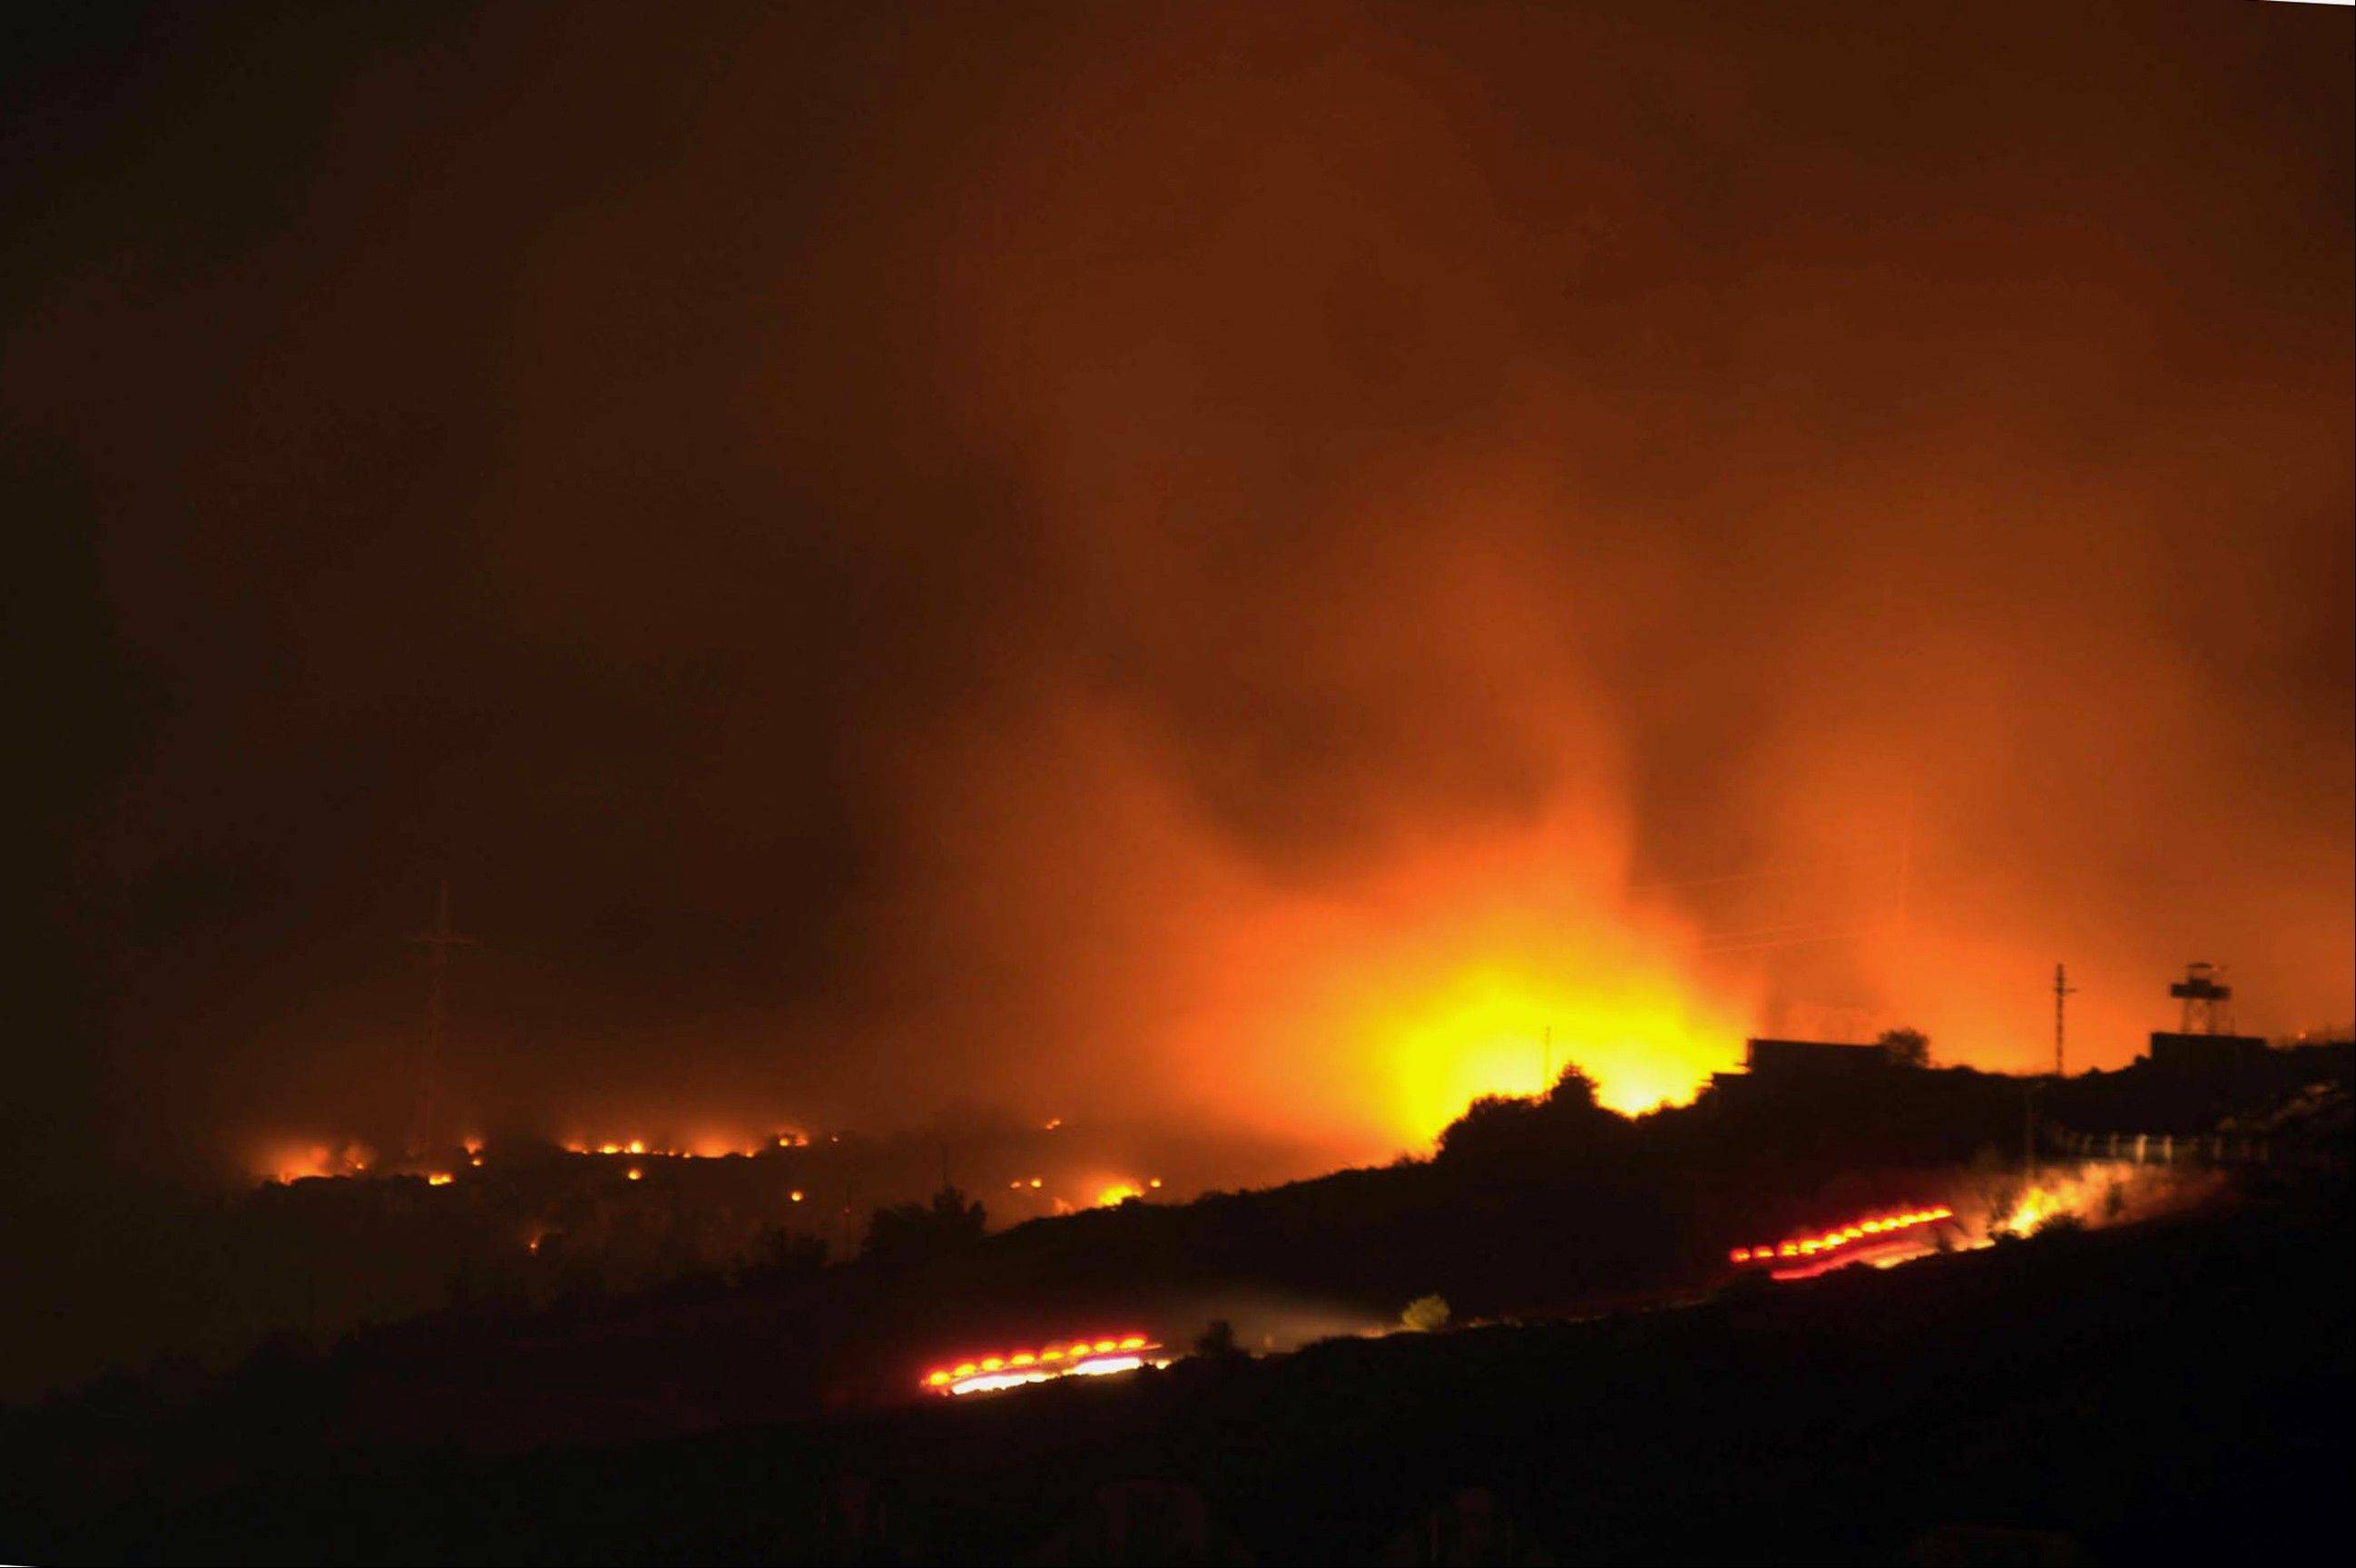 A glow of a large fire seen after an explosion at an ammunition store in Afyonkarahisar in western Turkey which has killed some 25 soldiers and wounded at least four others, Thursday, Sept. 6, 2012. The blast happened on Wednesday night at a military storage for hand grenades in Afyon, military said. Environment Minister Veysel Eroglu said the explosion was most likely caused by an accident.